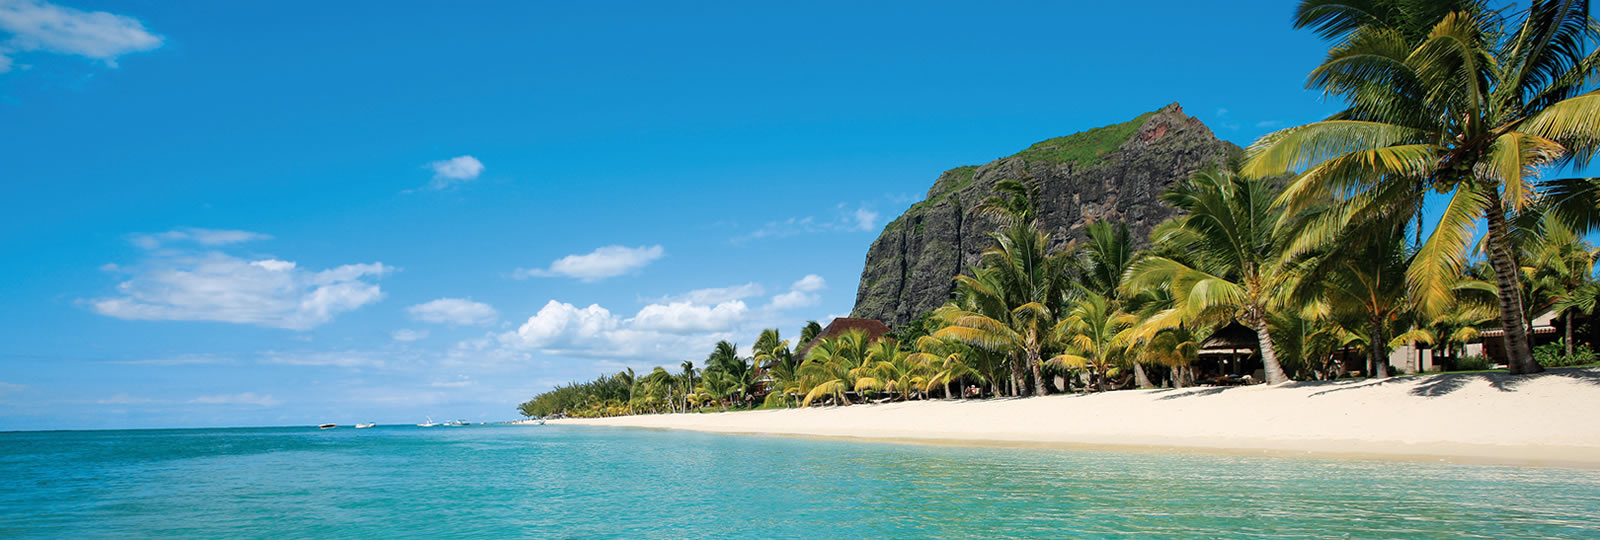 LUX-_Le_Morne,_5-_Hotel_in_Mauritius.jpg